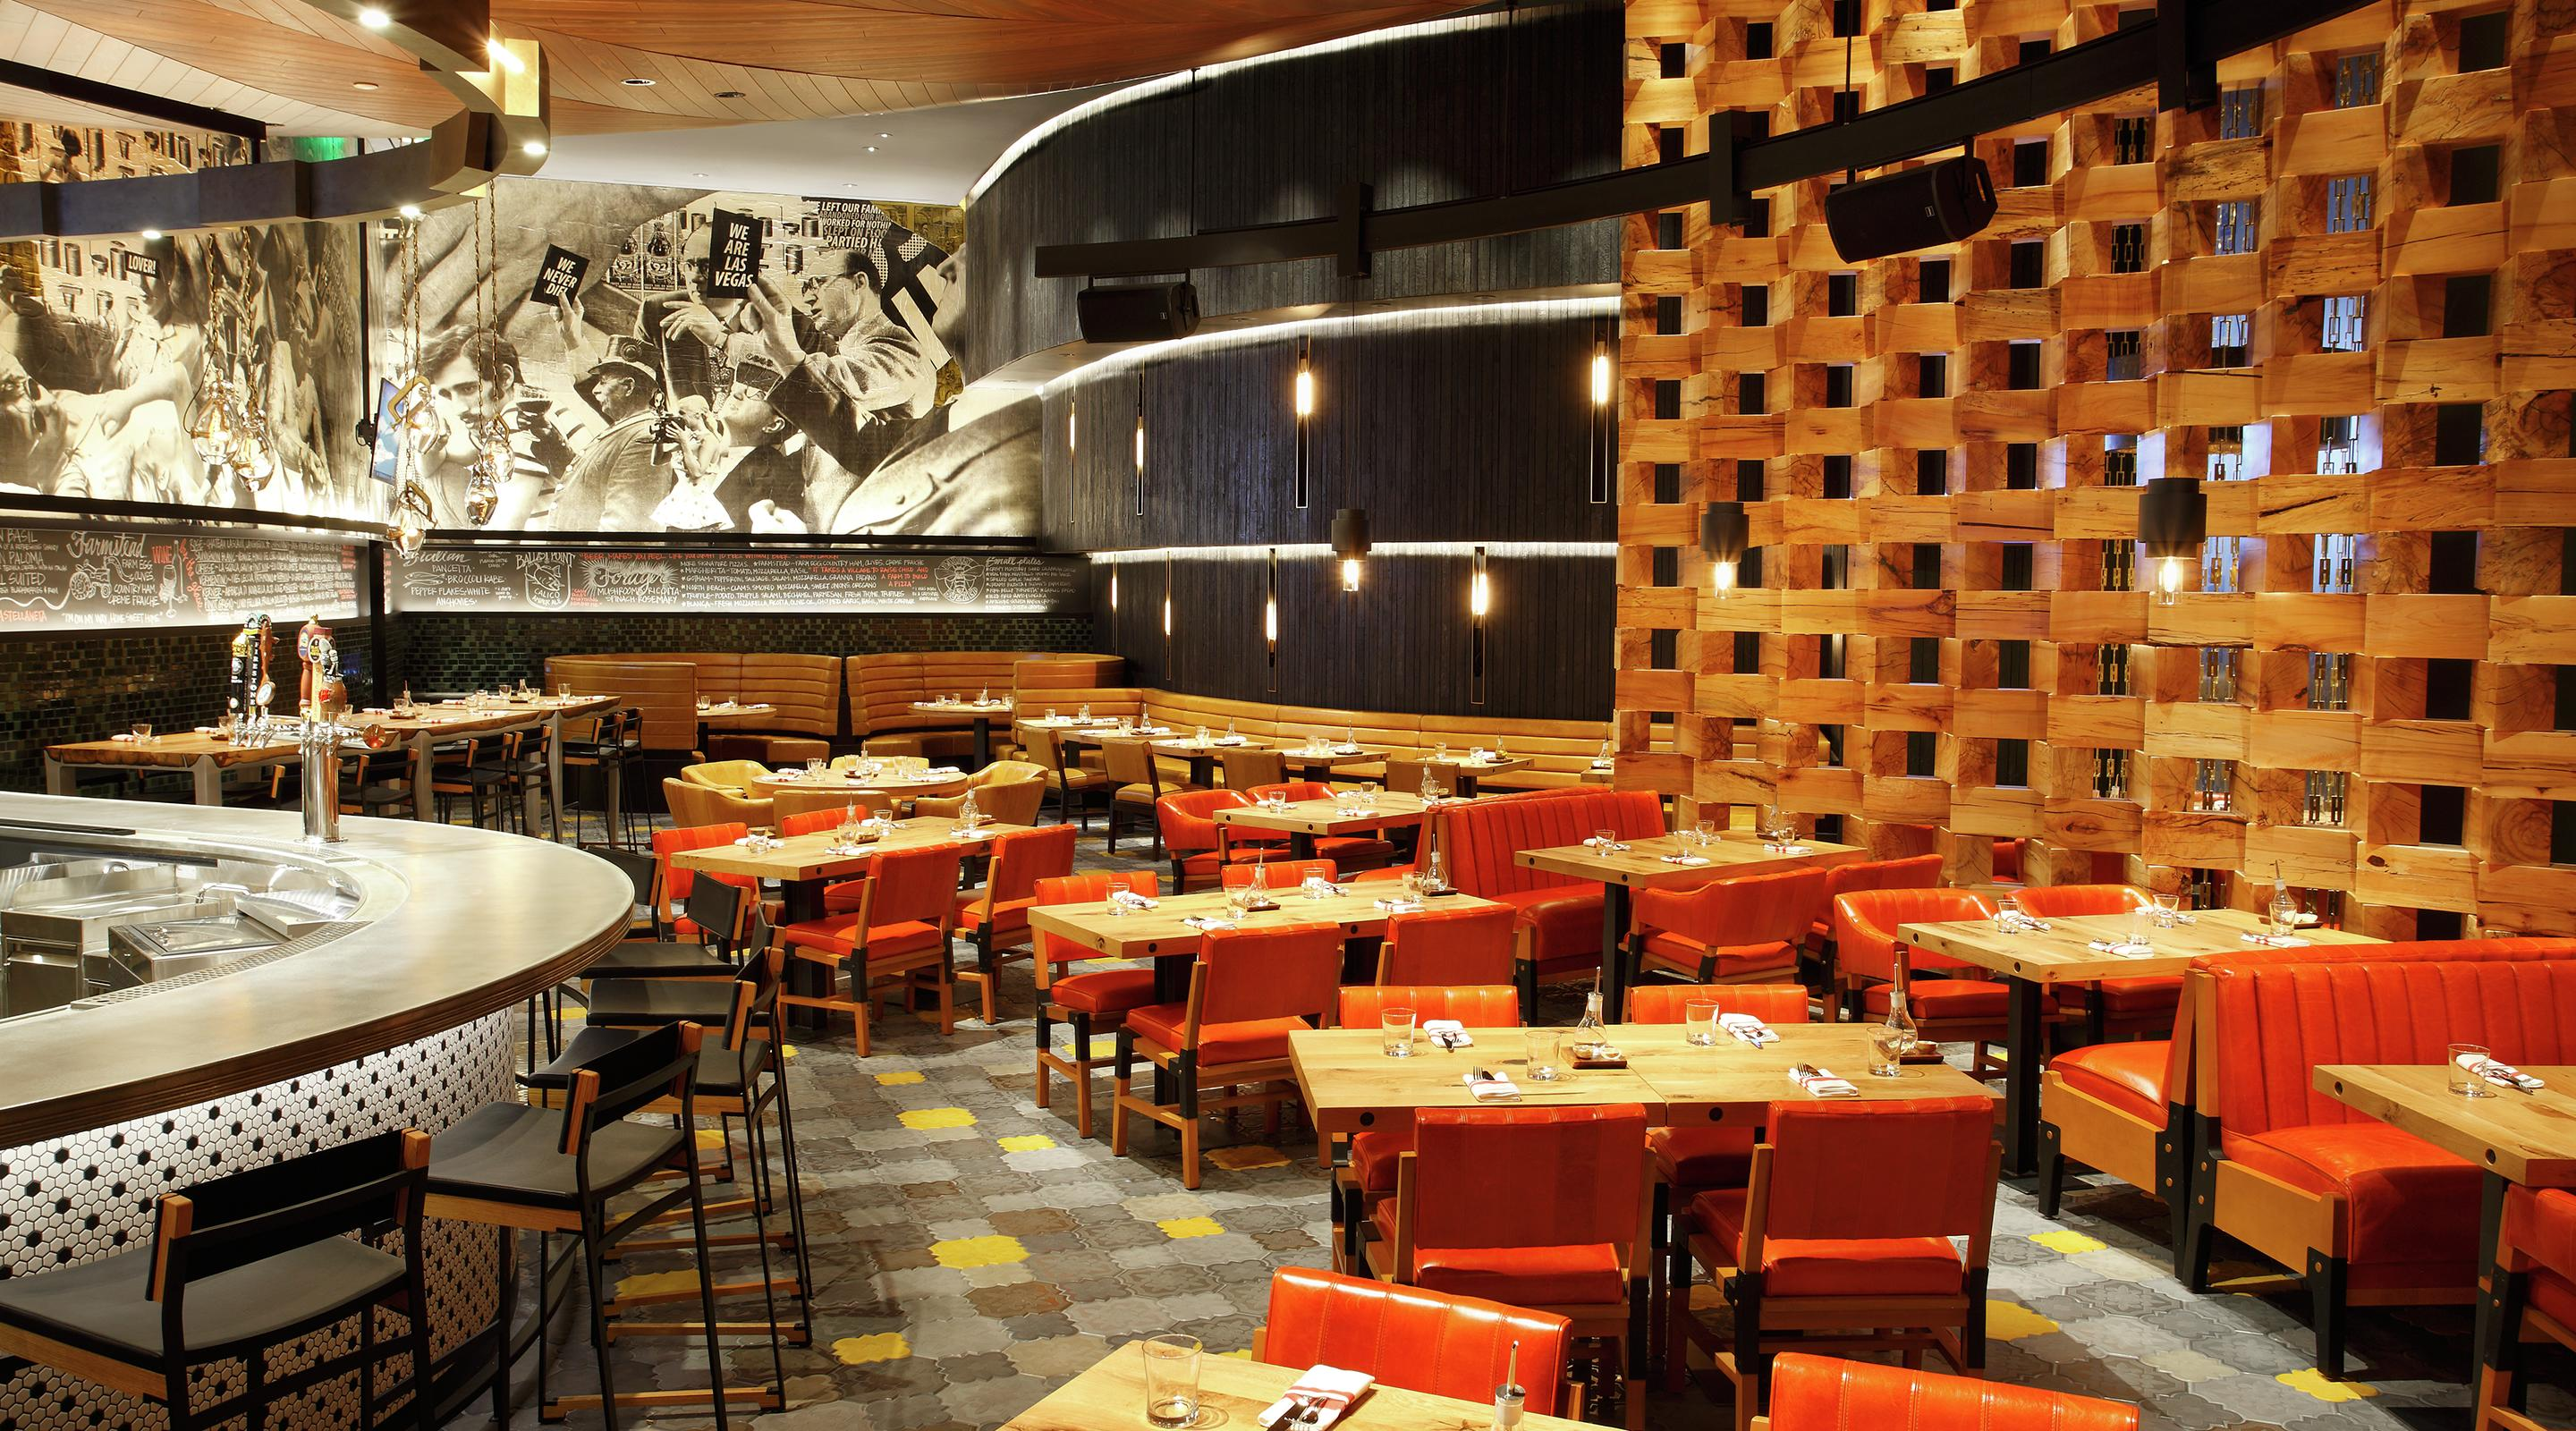 Five50 Pizza Bar, ARIA's exclusive joint venture with Chef and Restaurateur Shawn McClain.